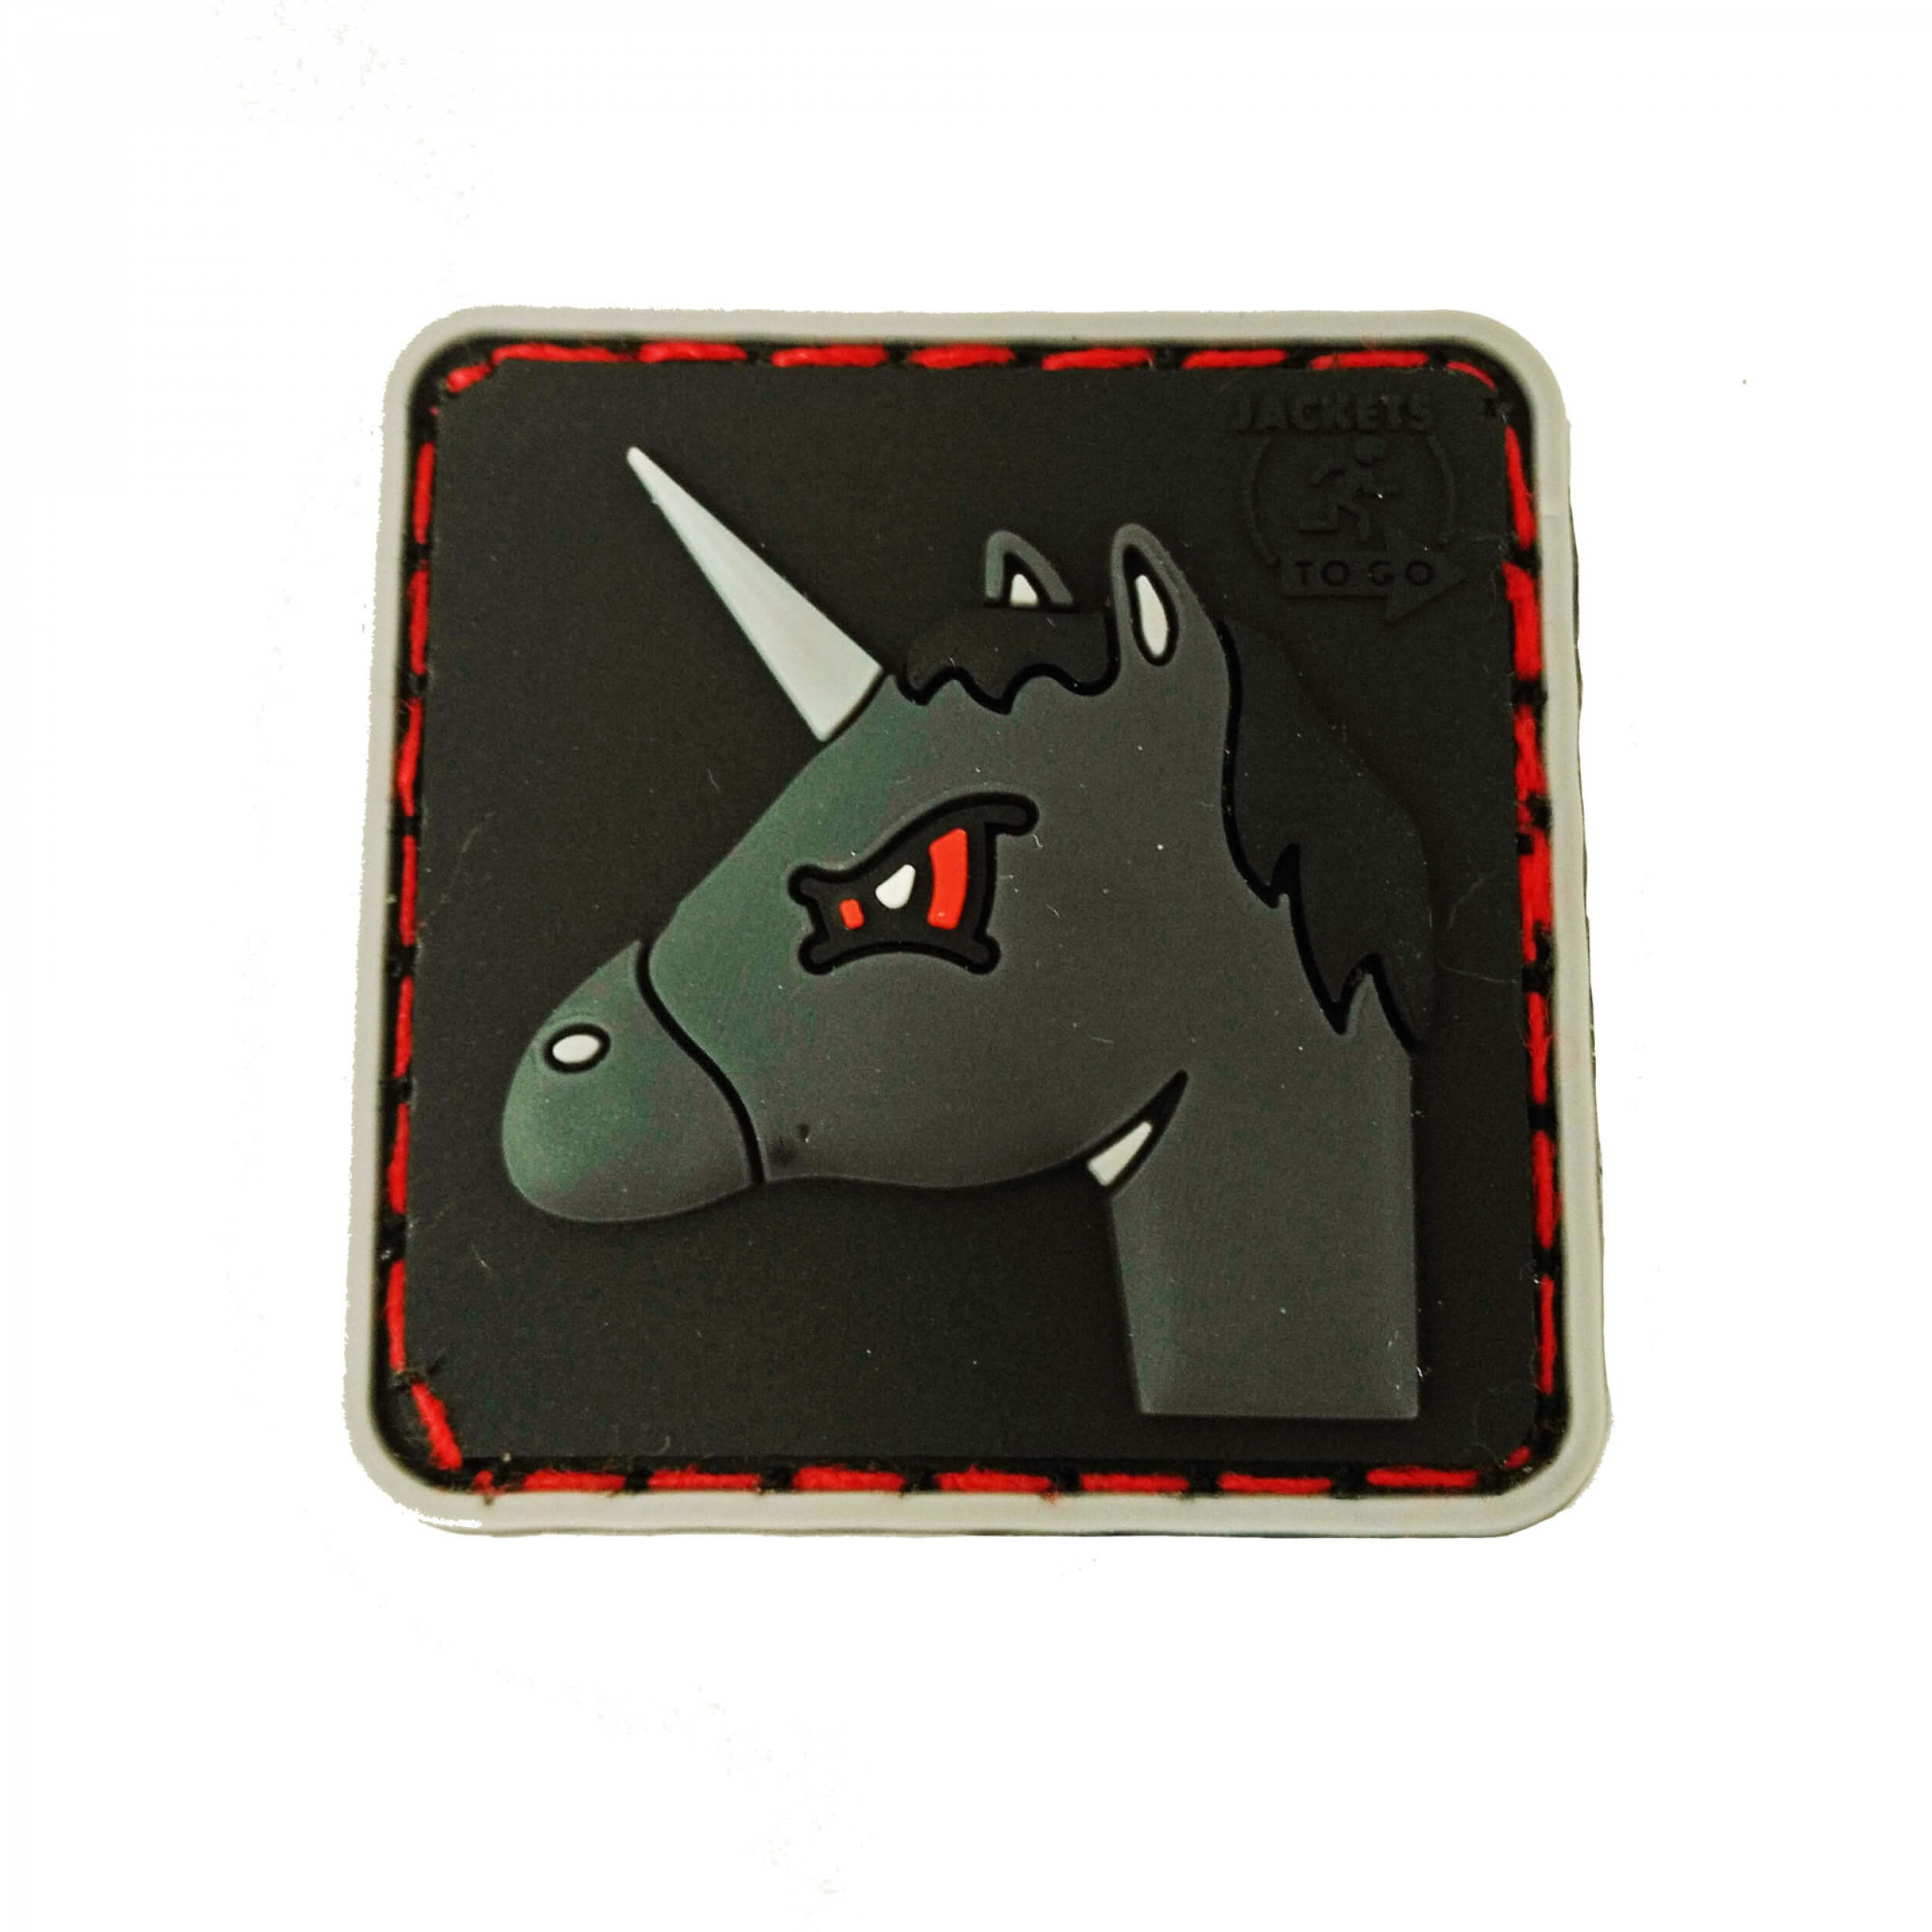 Flavour ANGRY UNICORN Patch, strawberry aroma, delicately scented, limited edition